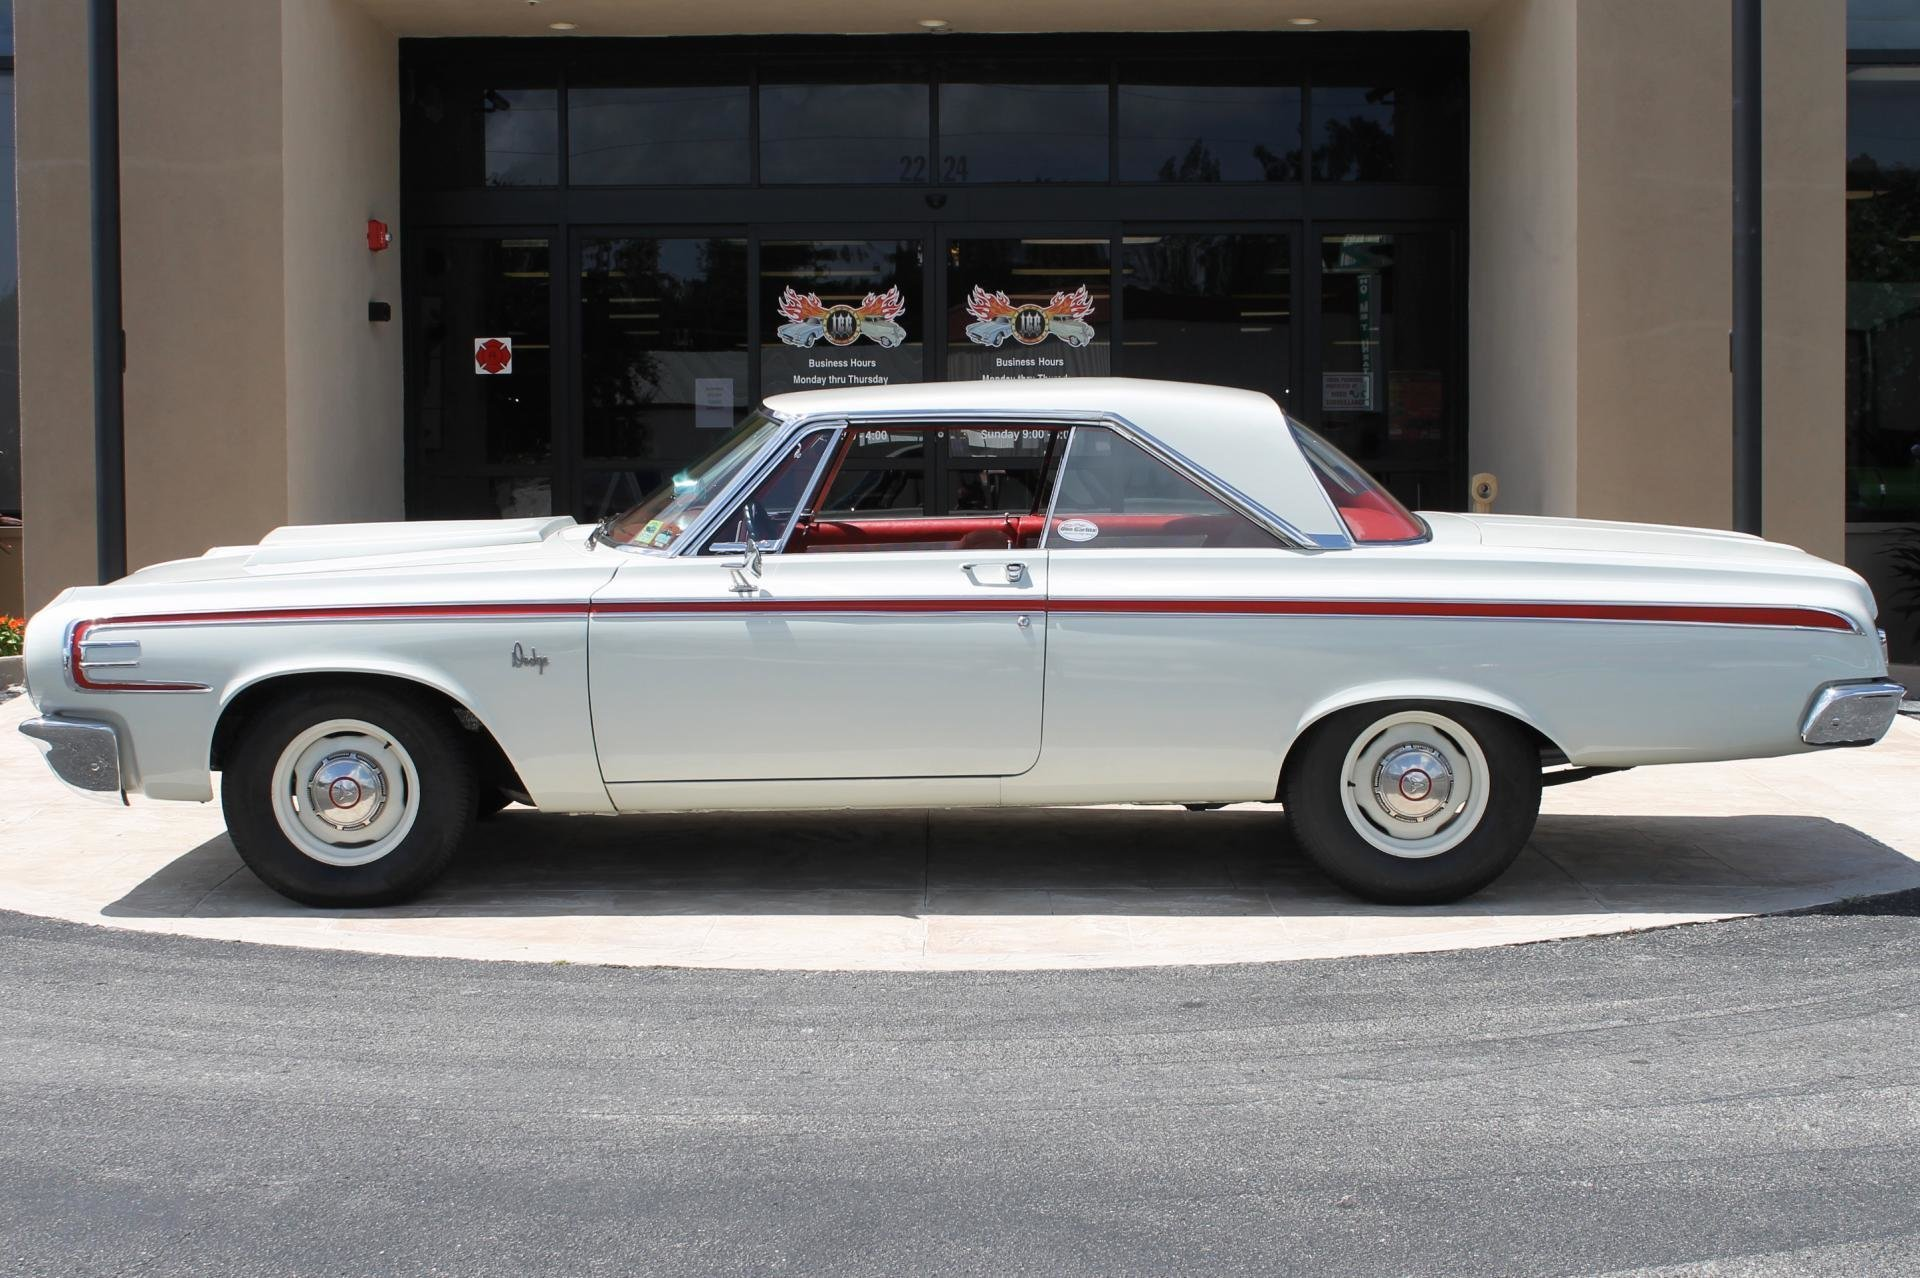 1964 Dodge 440 Ideal Classic Cars Llc Max Wedge 68931c8f4639 Low Res